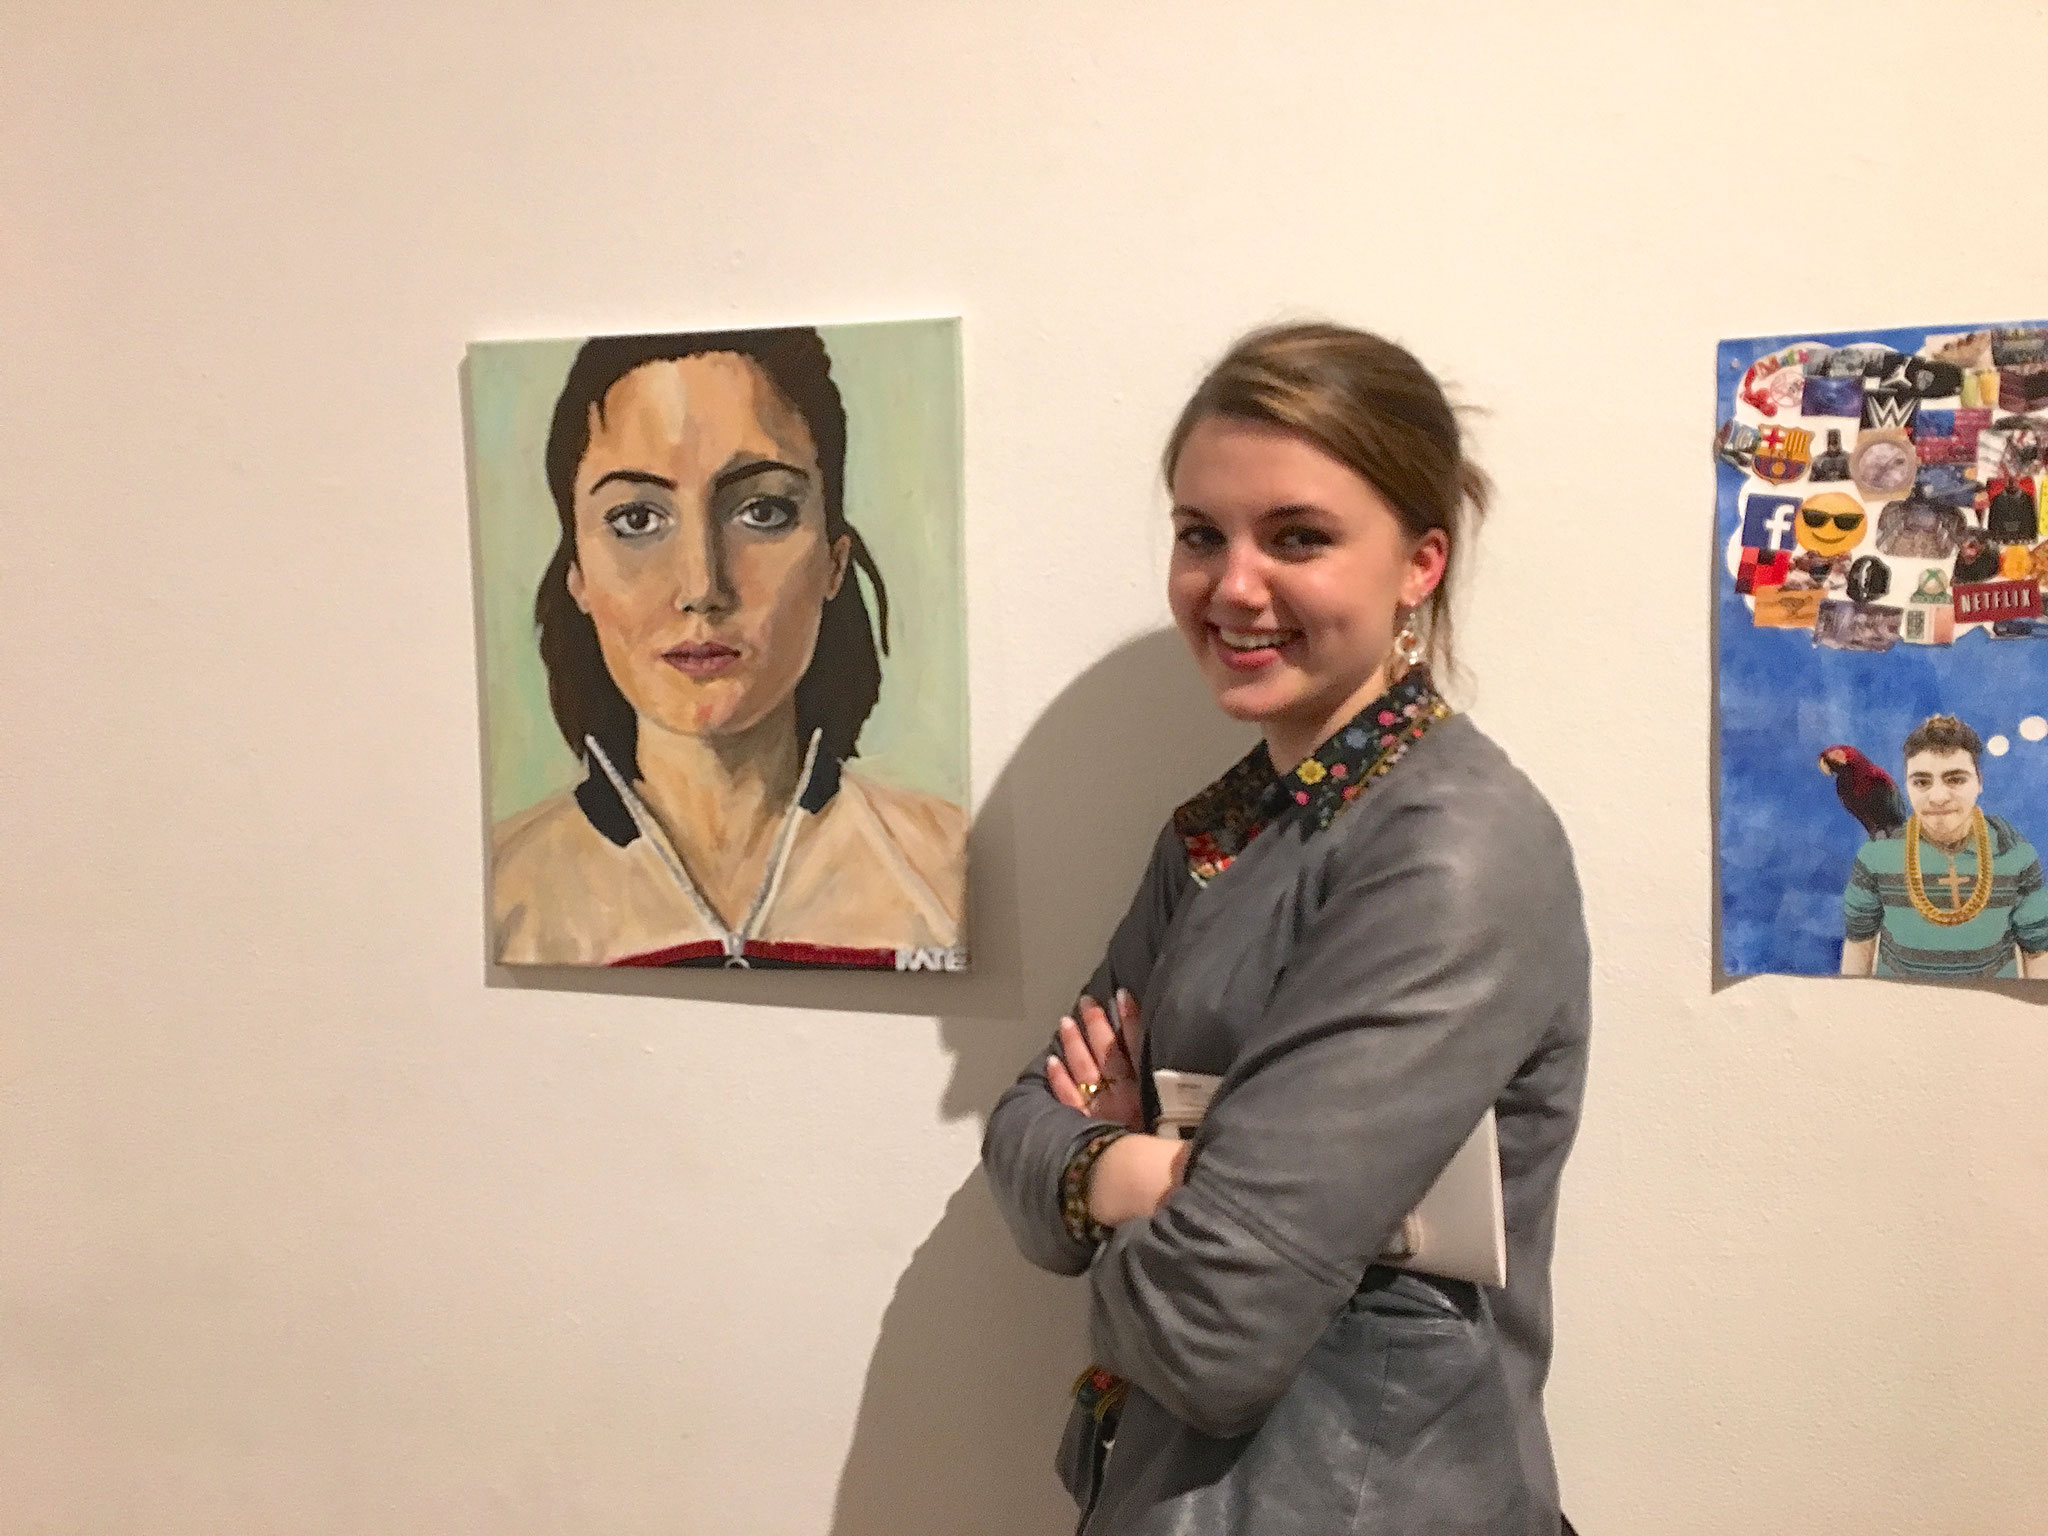 Kate with her artwork at a gallery in NYC, 4-27-18